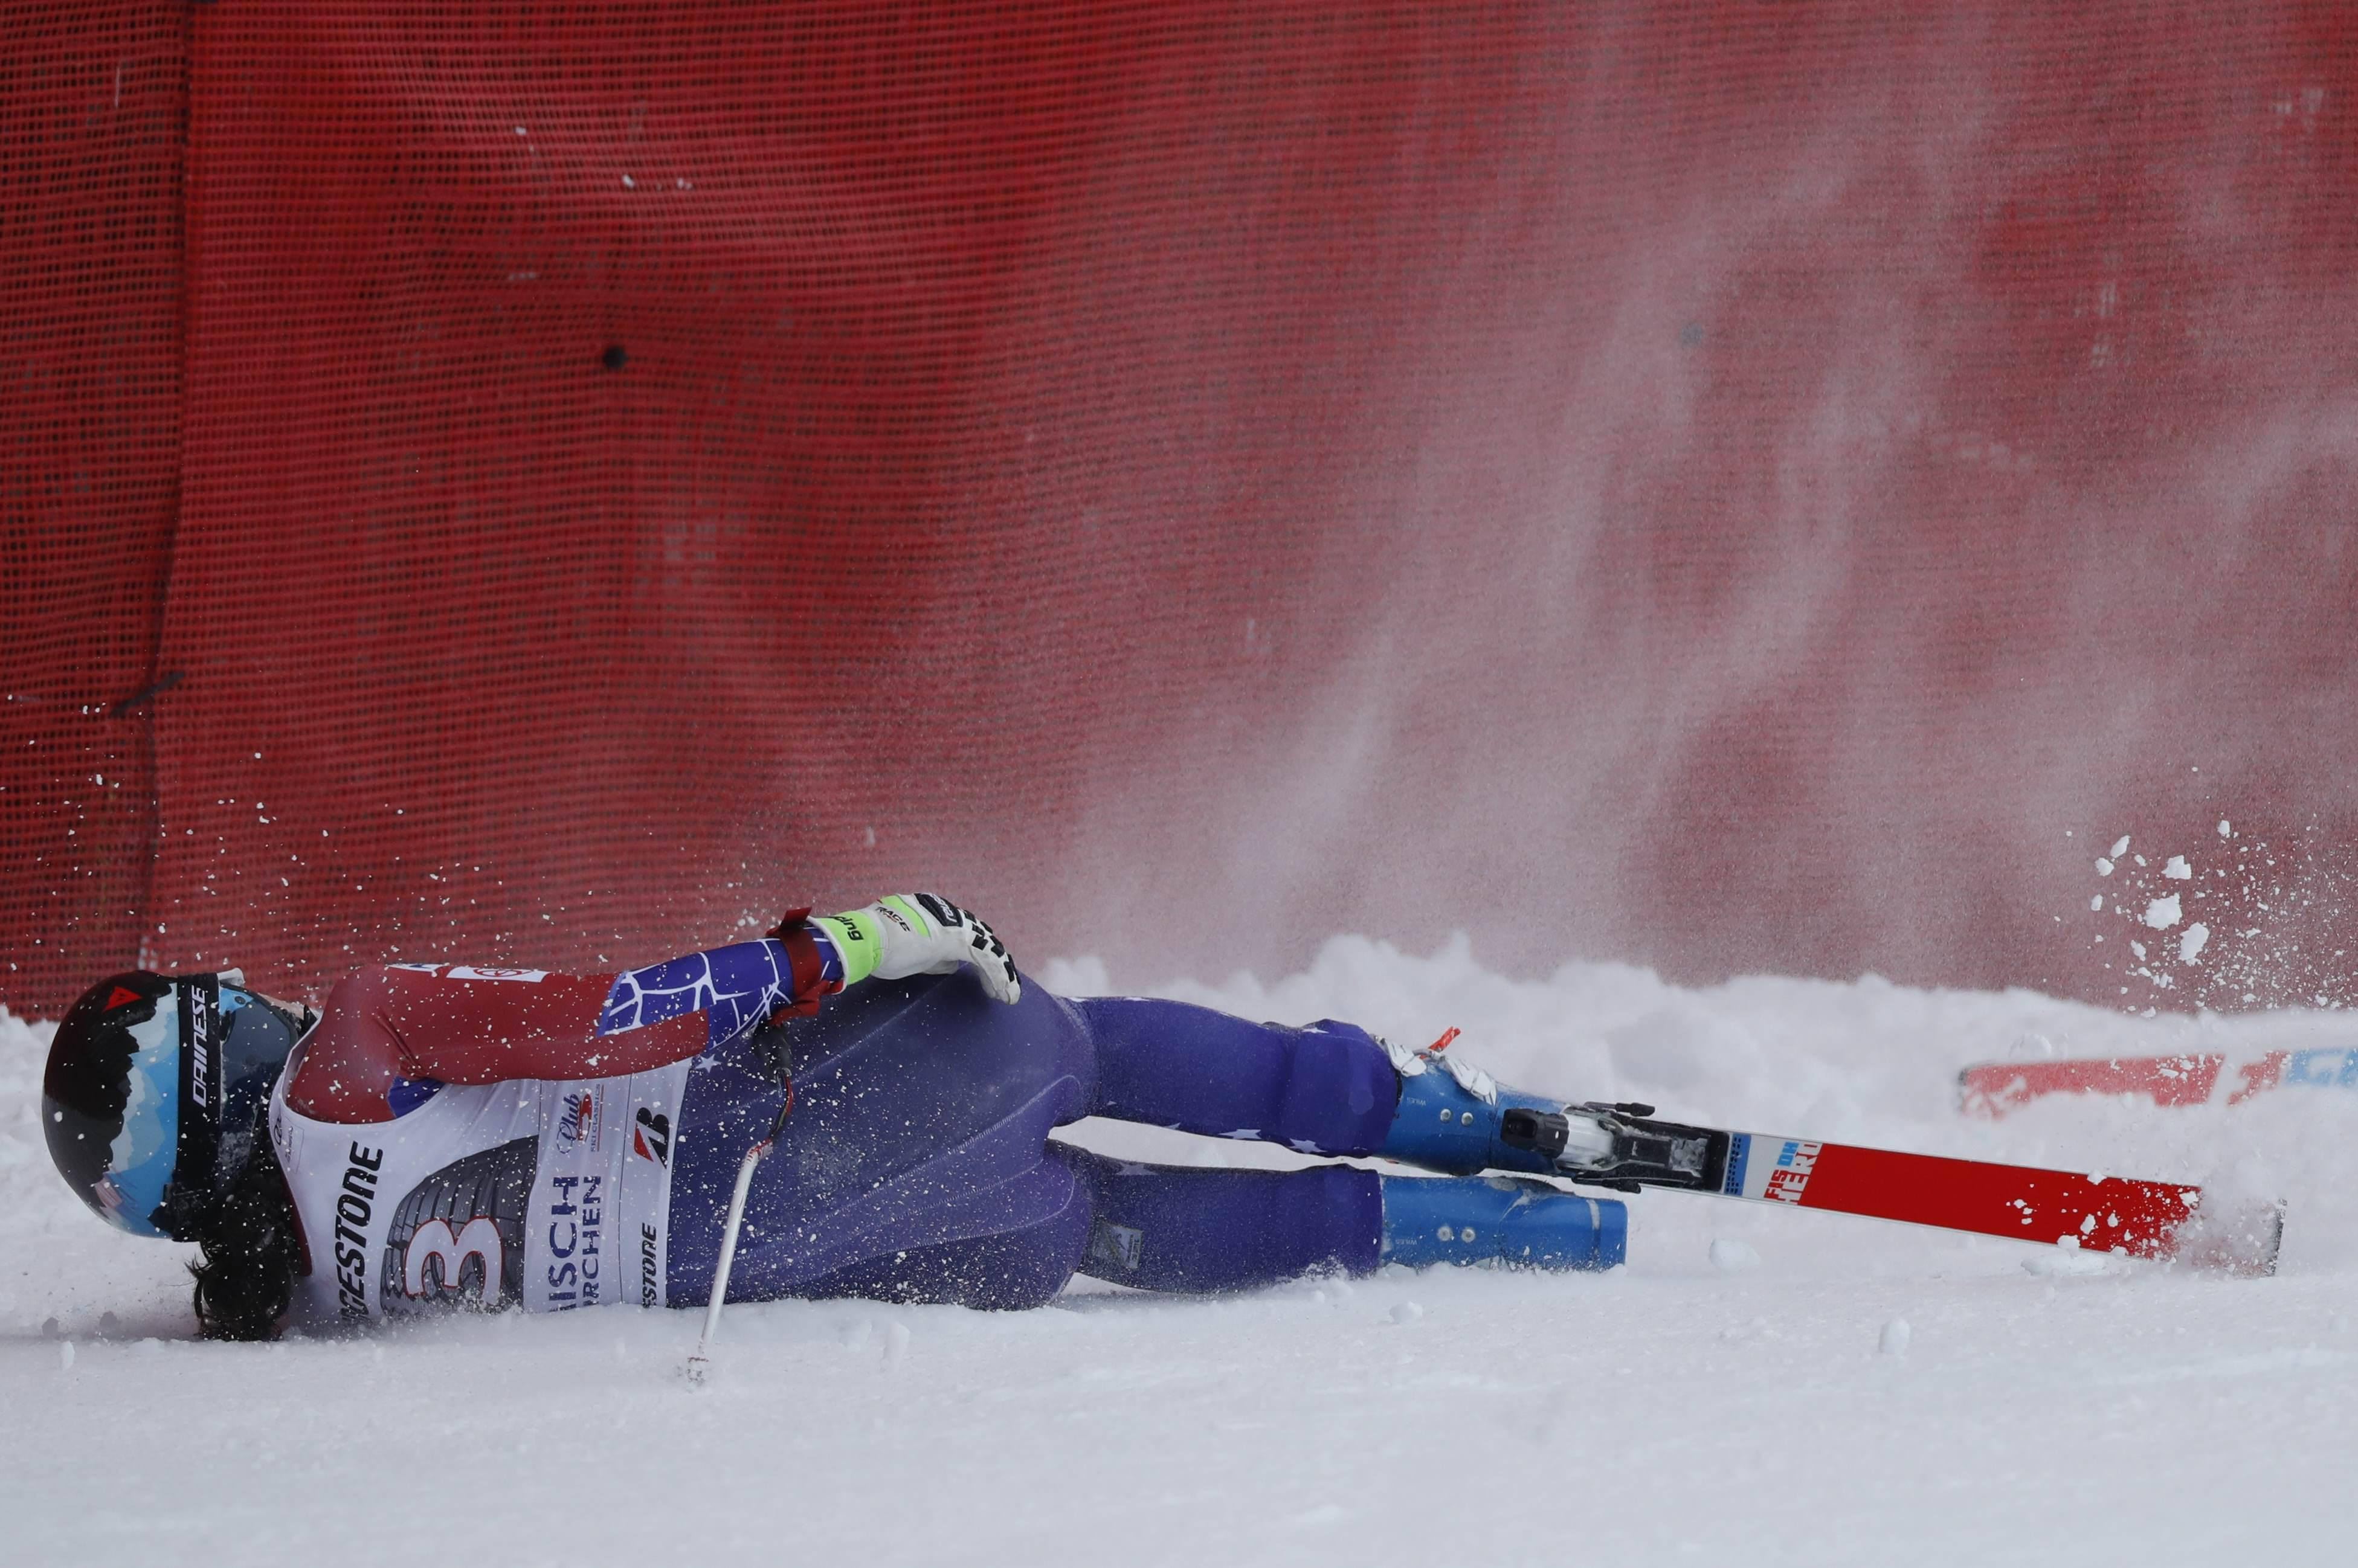 Jacqueline Wiles was left slumped on the snow after crashing out of the downhill event